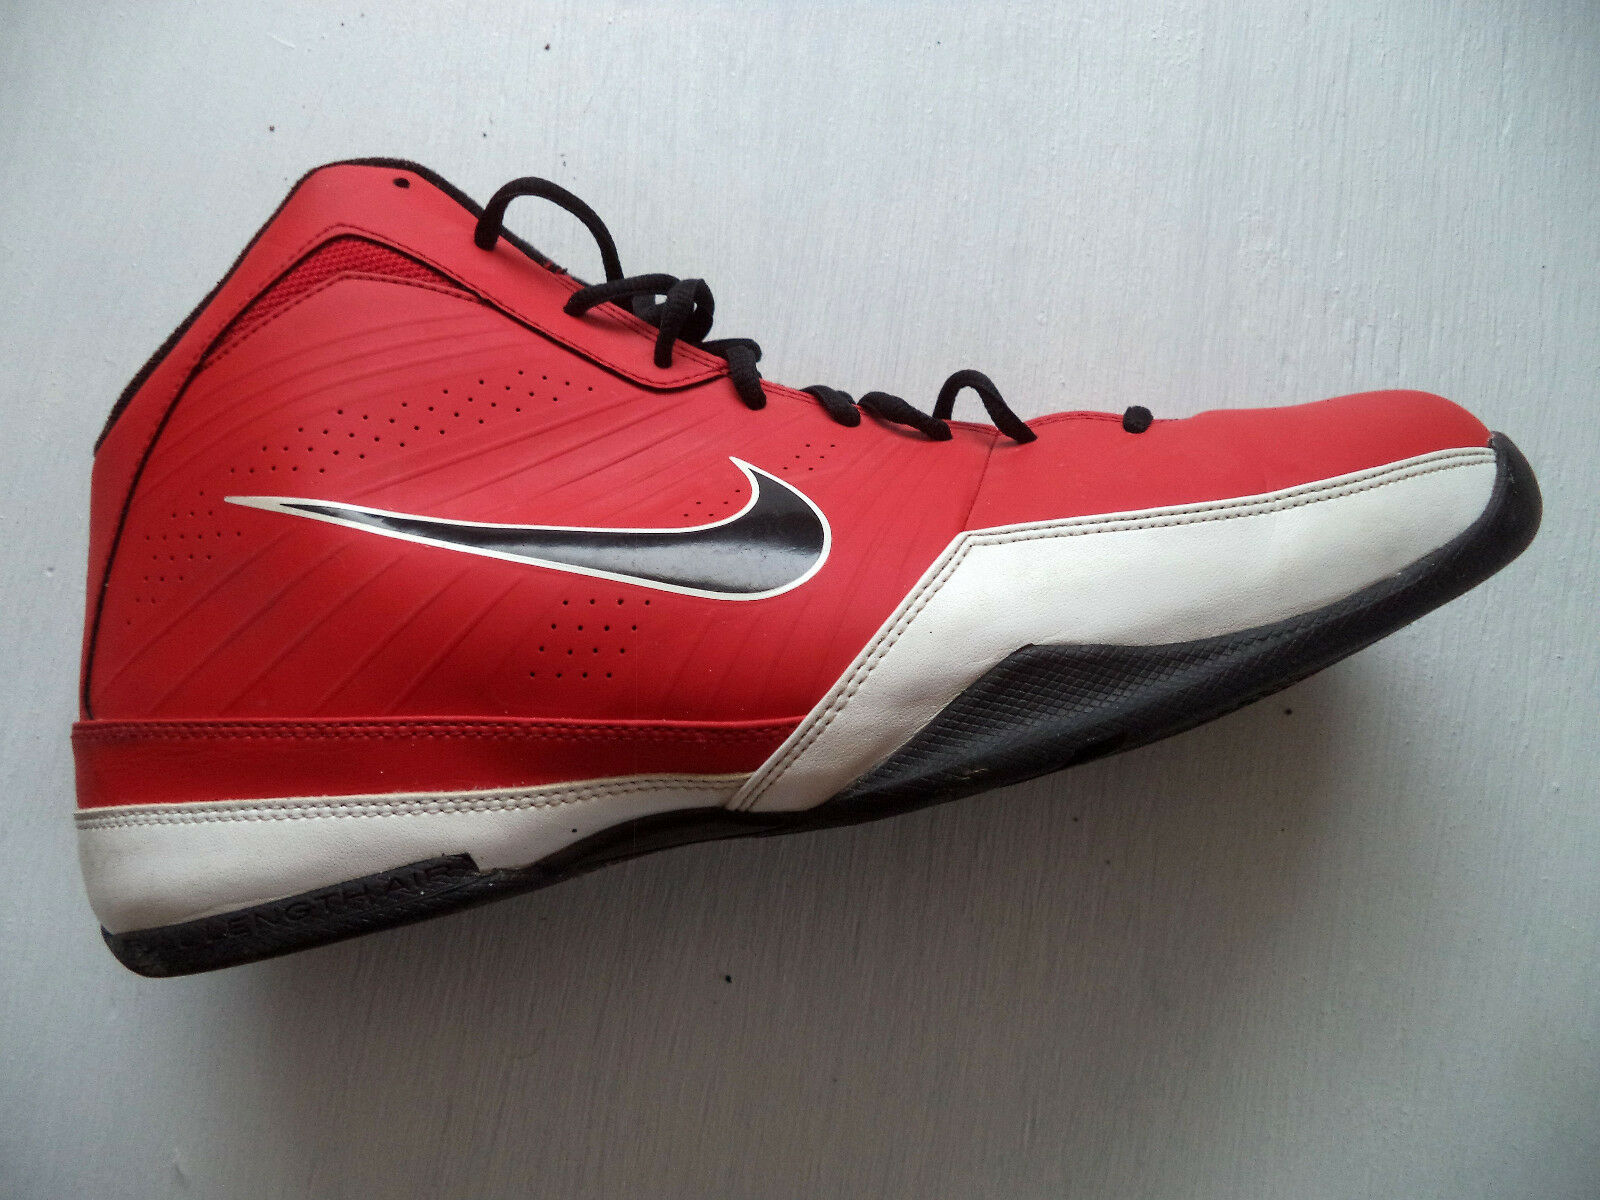 Mens Nike Air Quickhandle shoes Sz 15 gym fitness basketball hoops court pro The most popular shoes for men and women